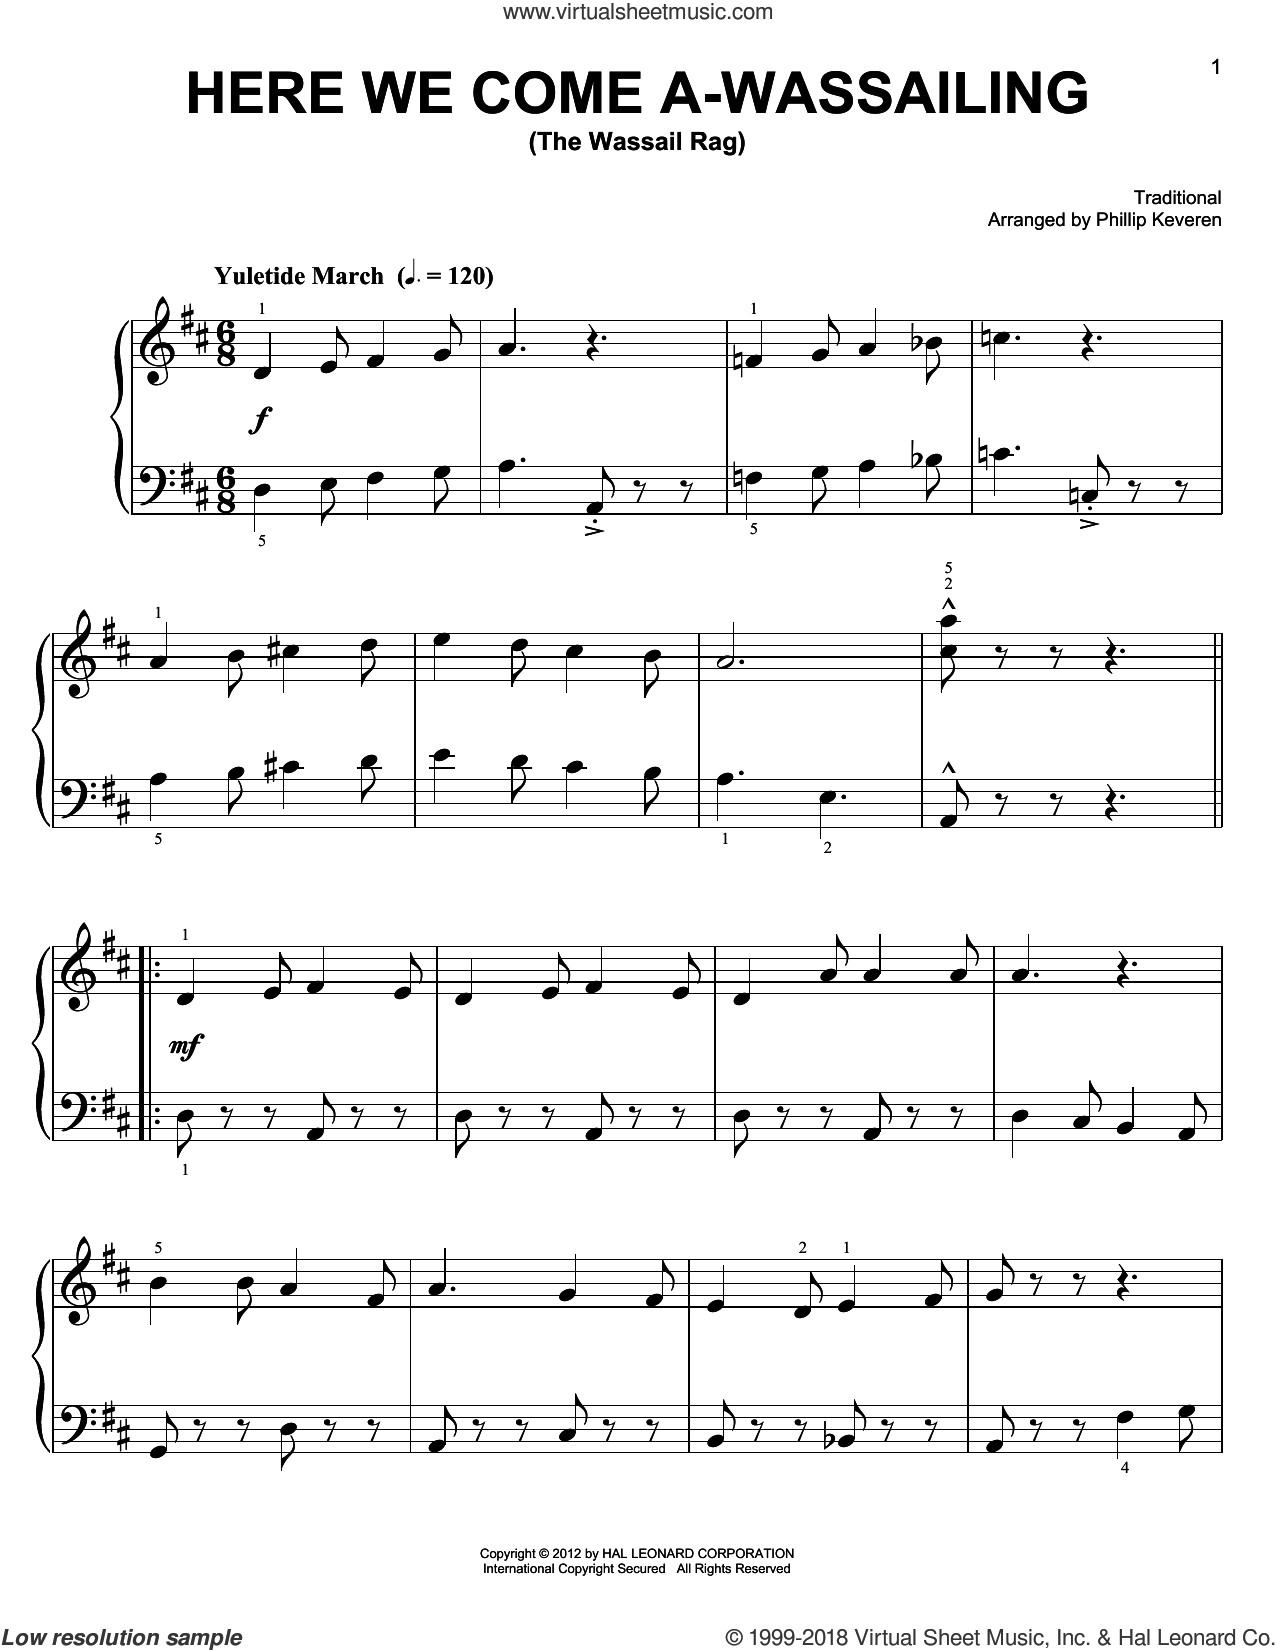 Here We Come A-Wassailing [Ragtime version] (arr. Phillip Keveren) sheet music for piano solo by Phillip Keveren and Miscellaneous, easy skill level